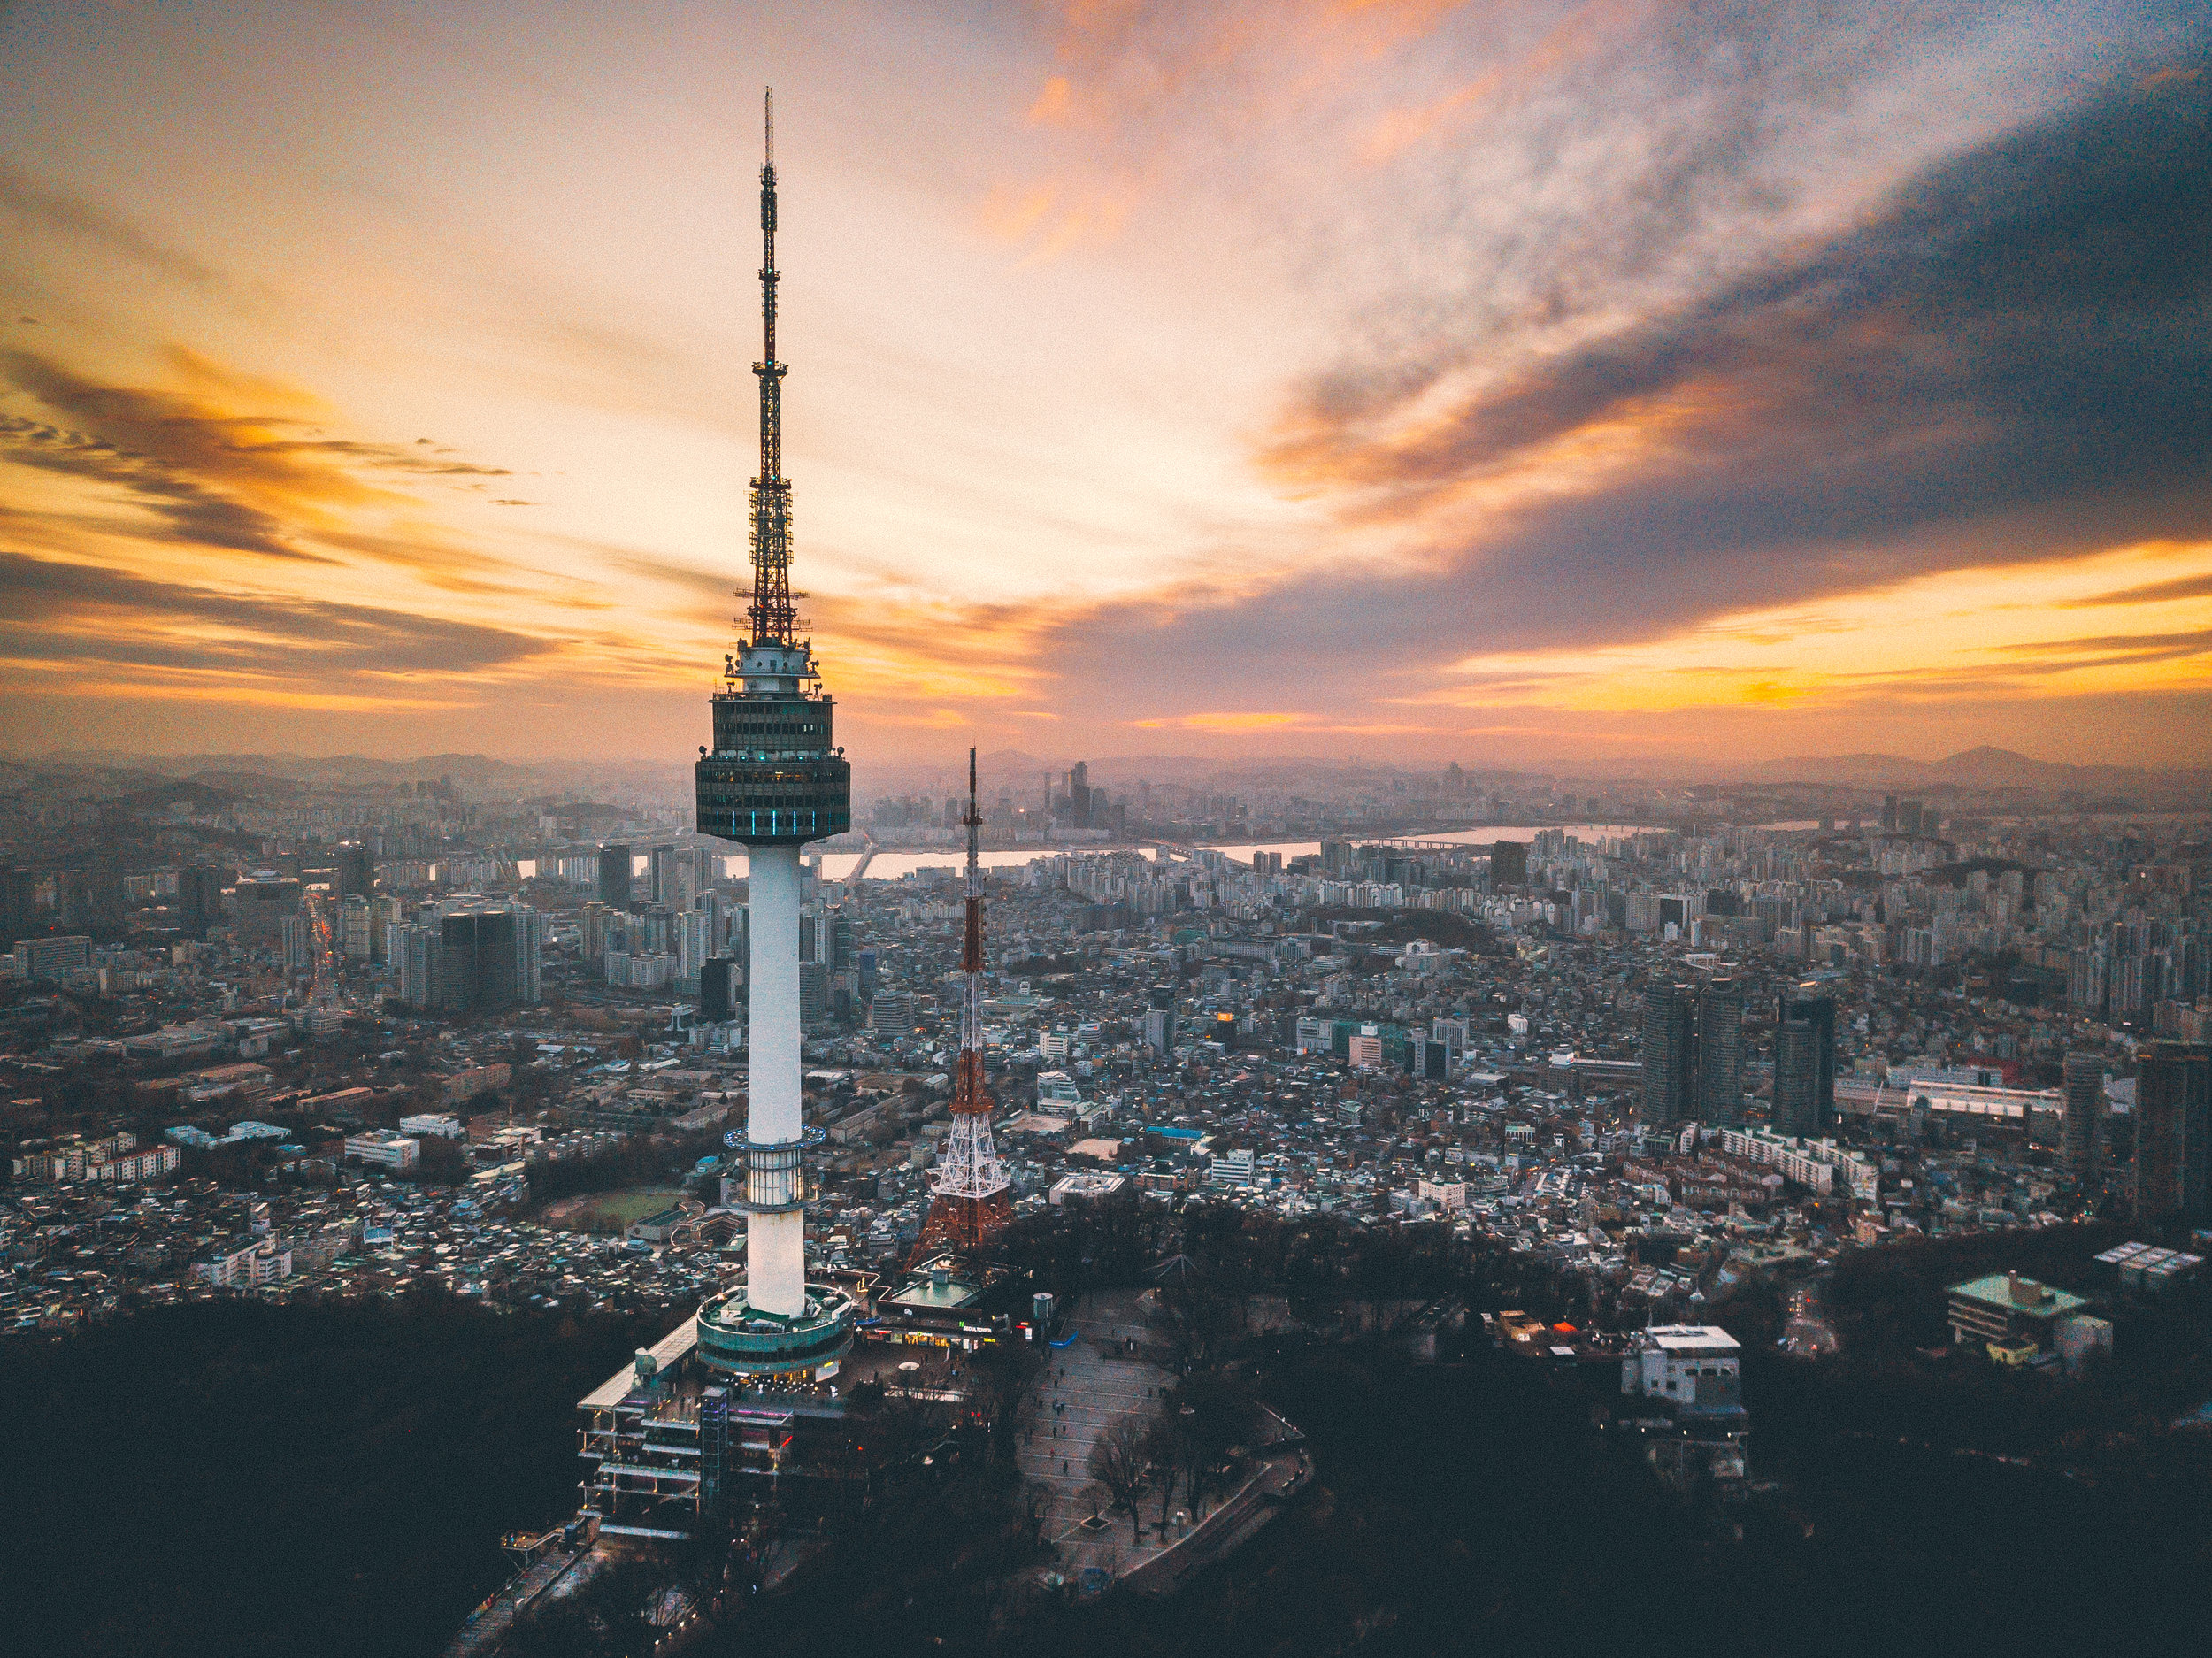 Sunset with N Seoul Tower